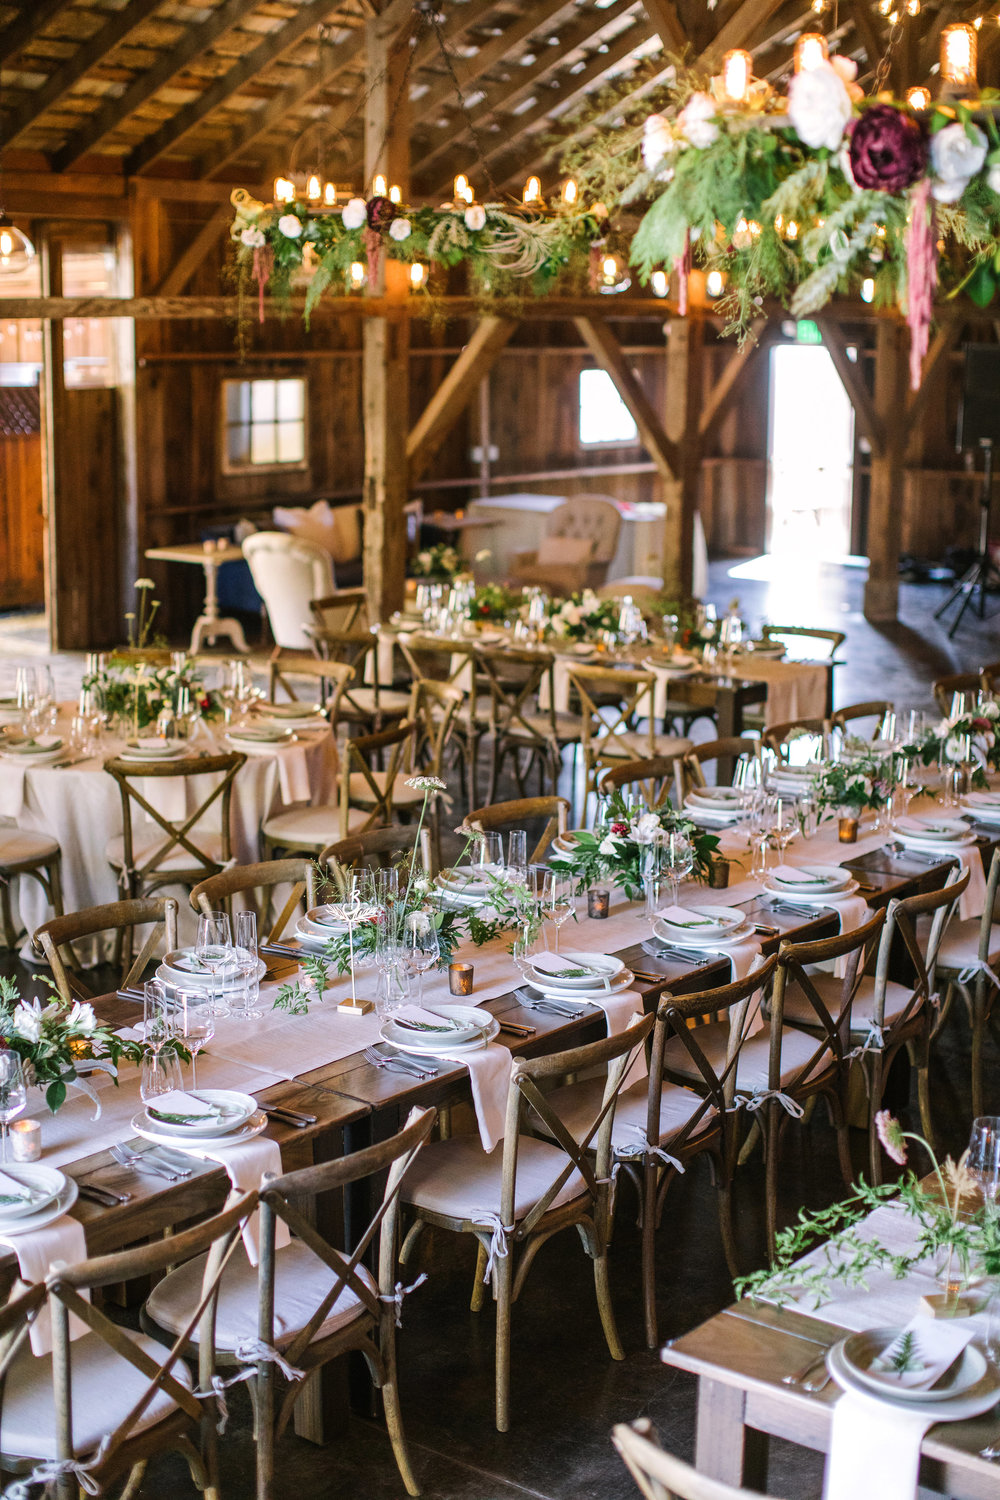 Wedding reception barn at Olympia's Valley Estate with floor to ceiling flowers by Venn Floral photographed by The Edges.